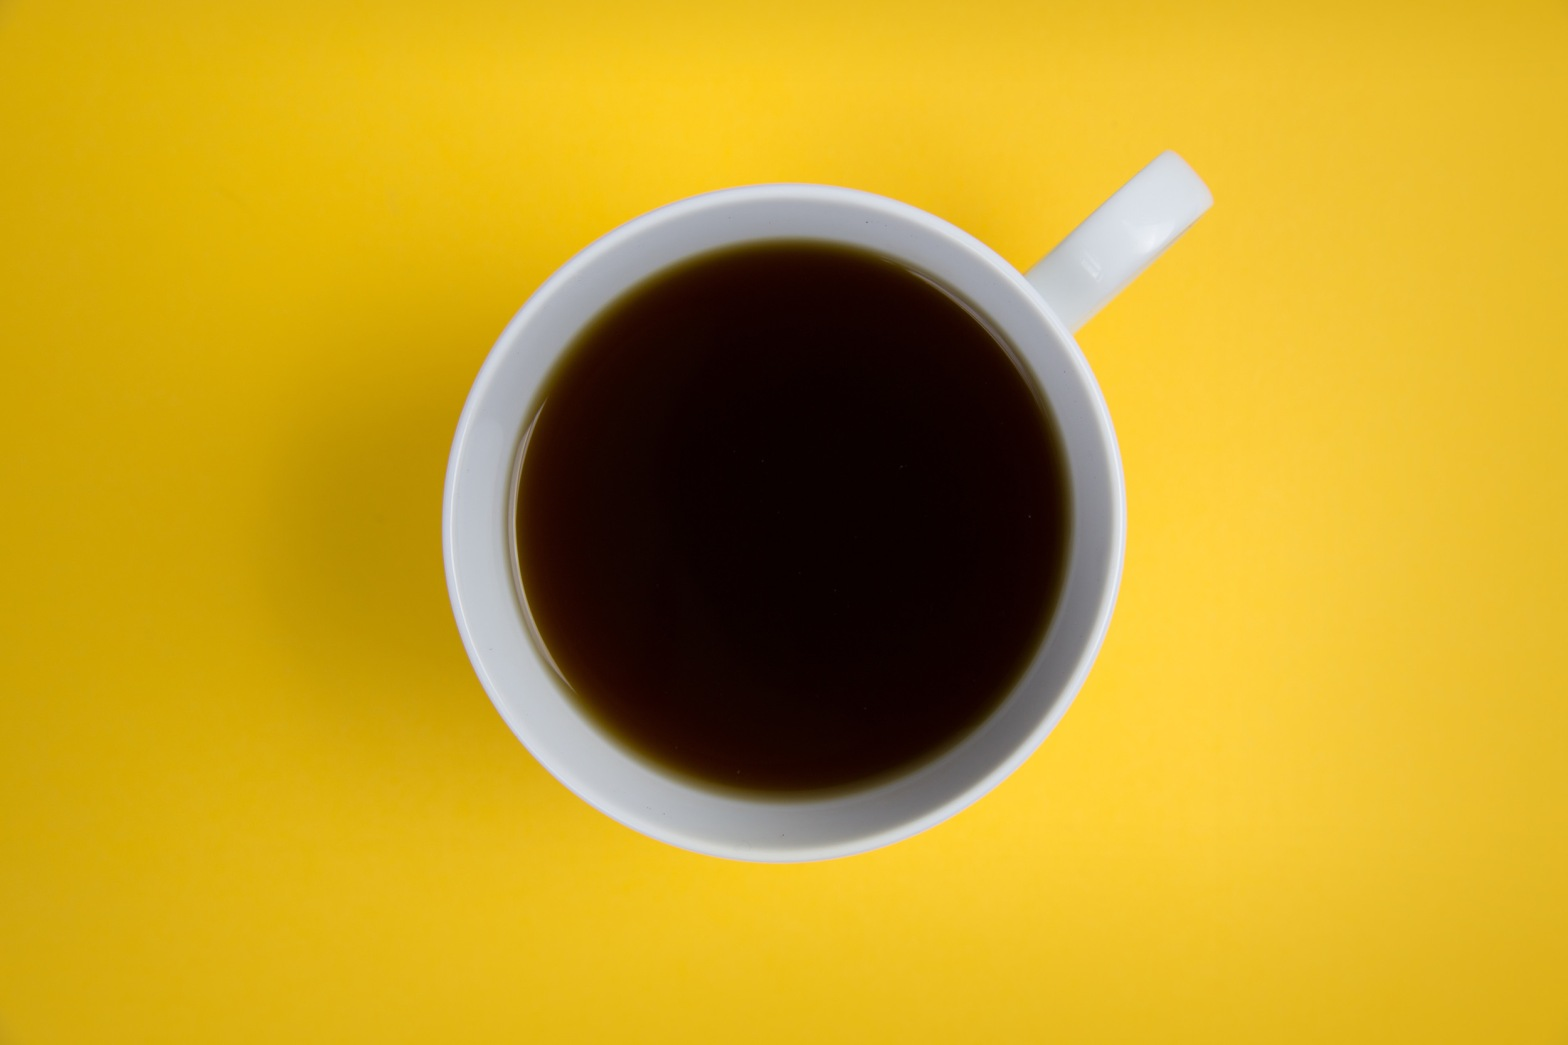 Top down view of coffee mug on a yellow surface